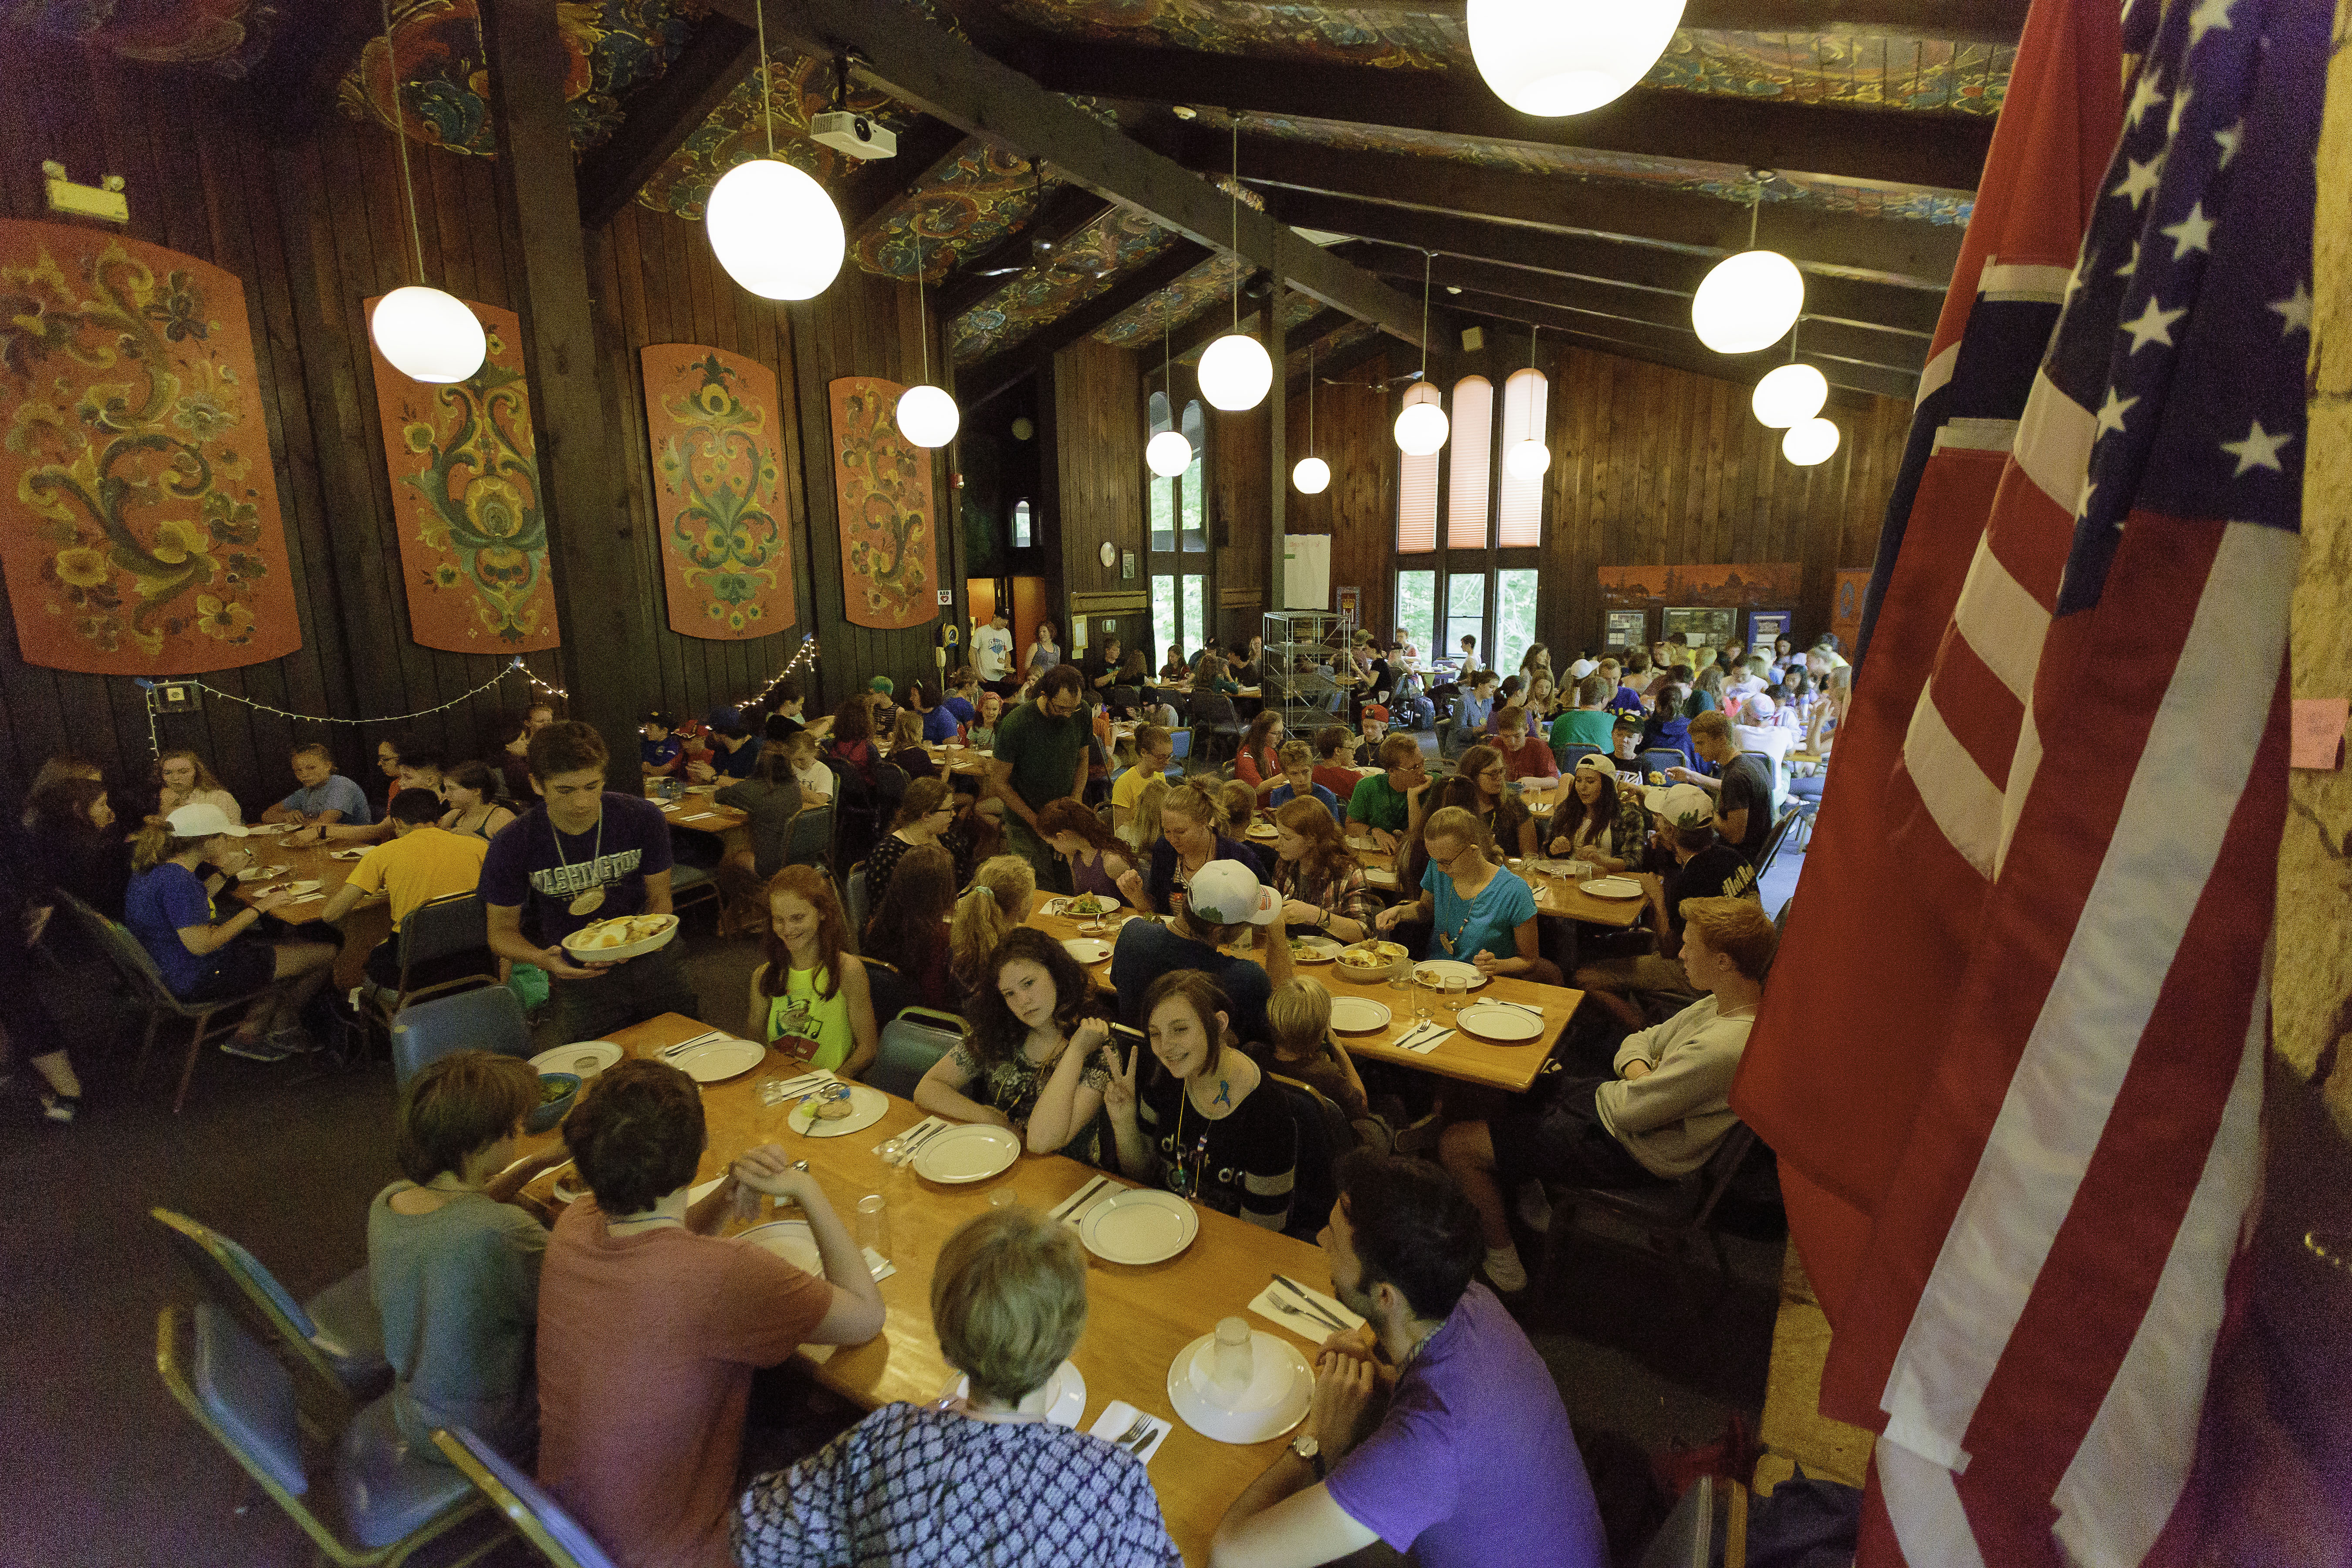 Villagers eating dinner in the Norwegian dining hall